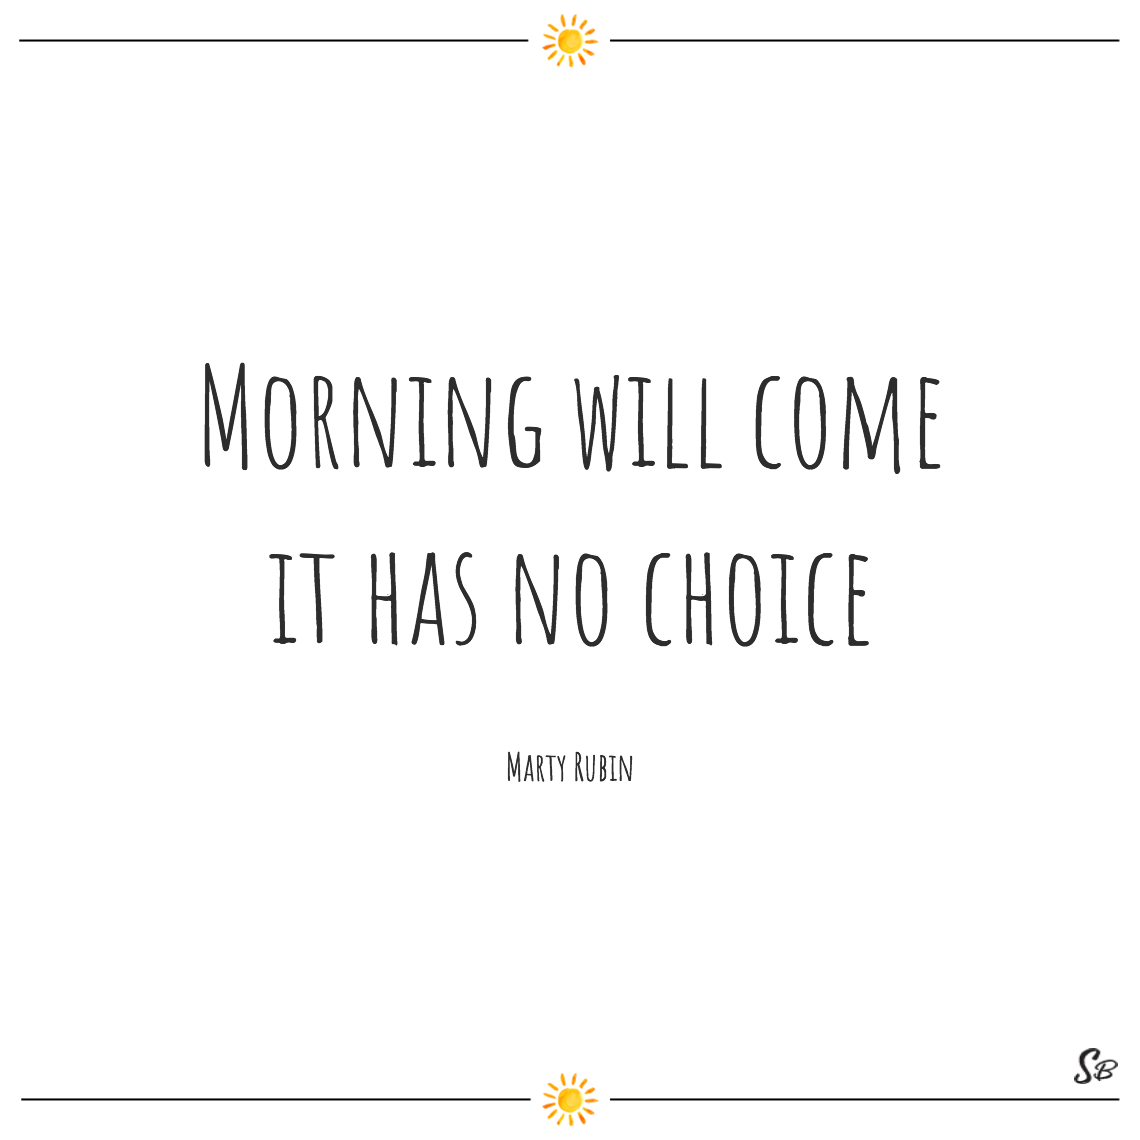 Morning will come it has no choice marty rubin